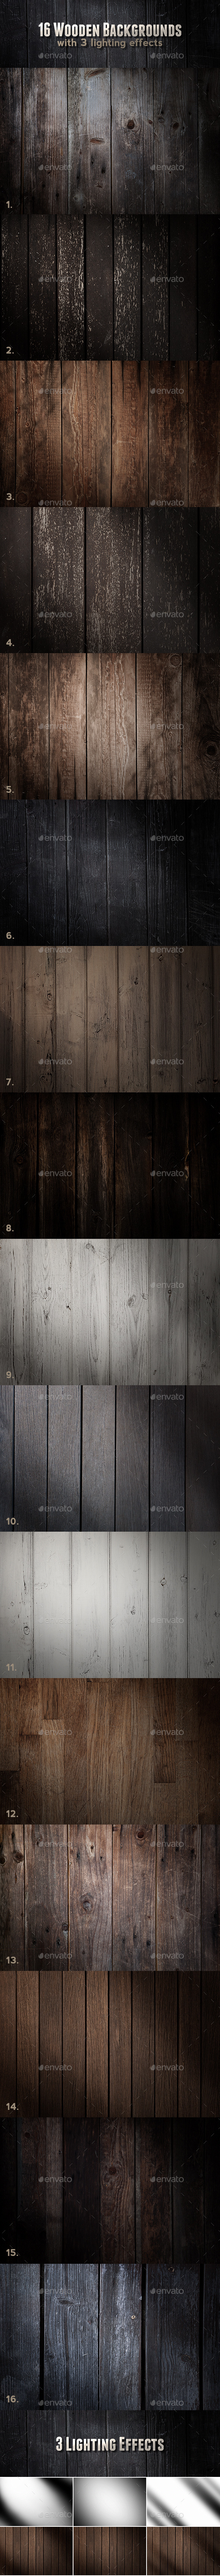 Wood Backgrounds - Wood Textures